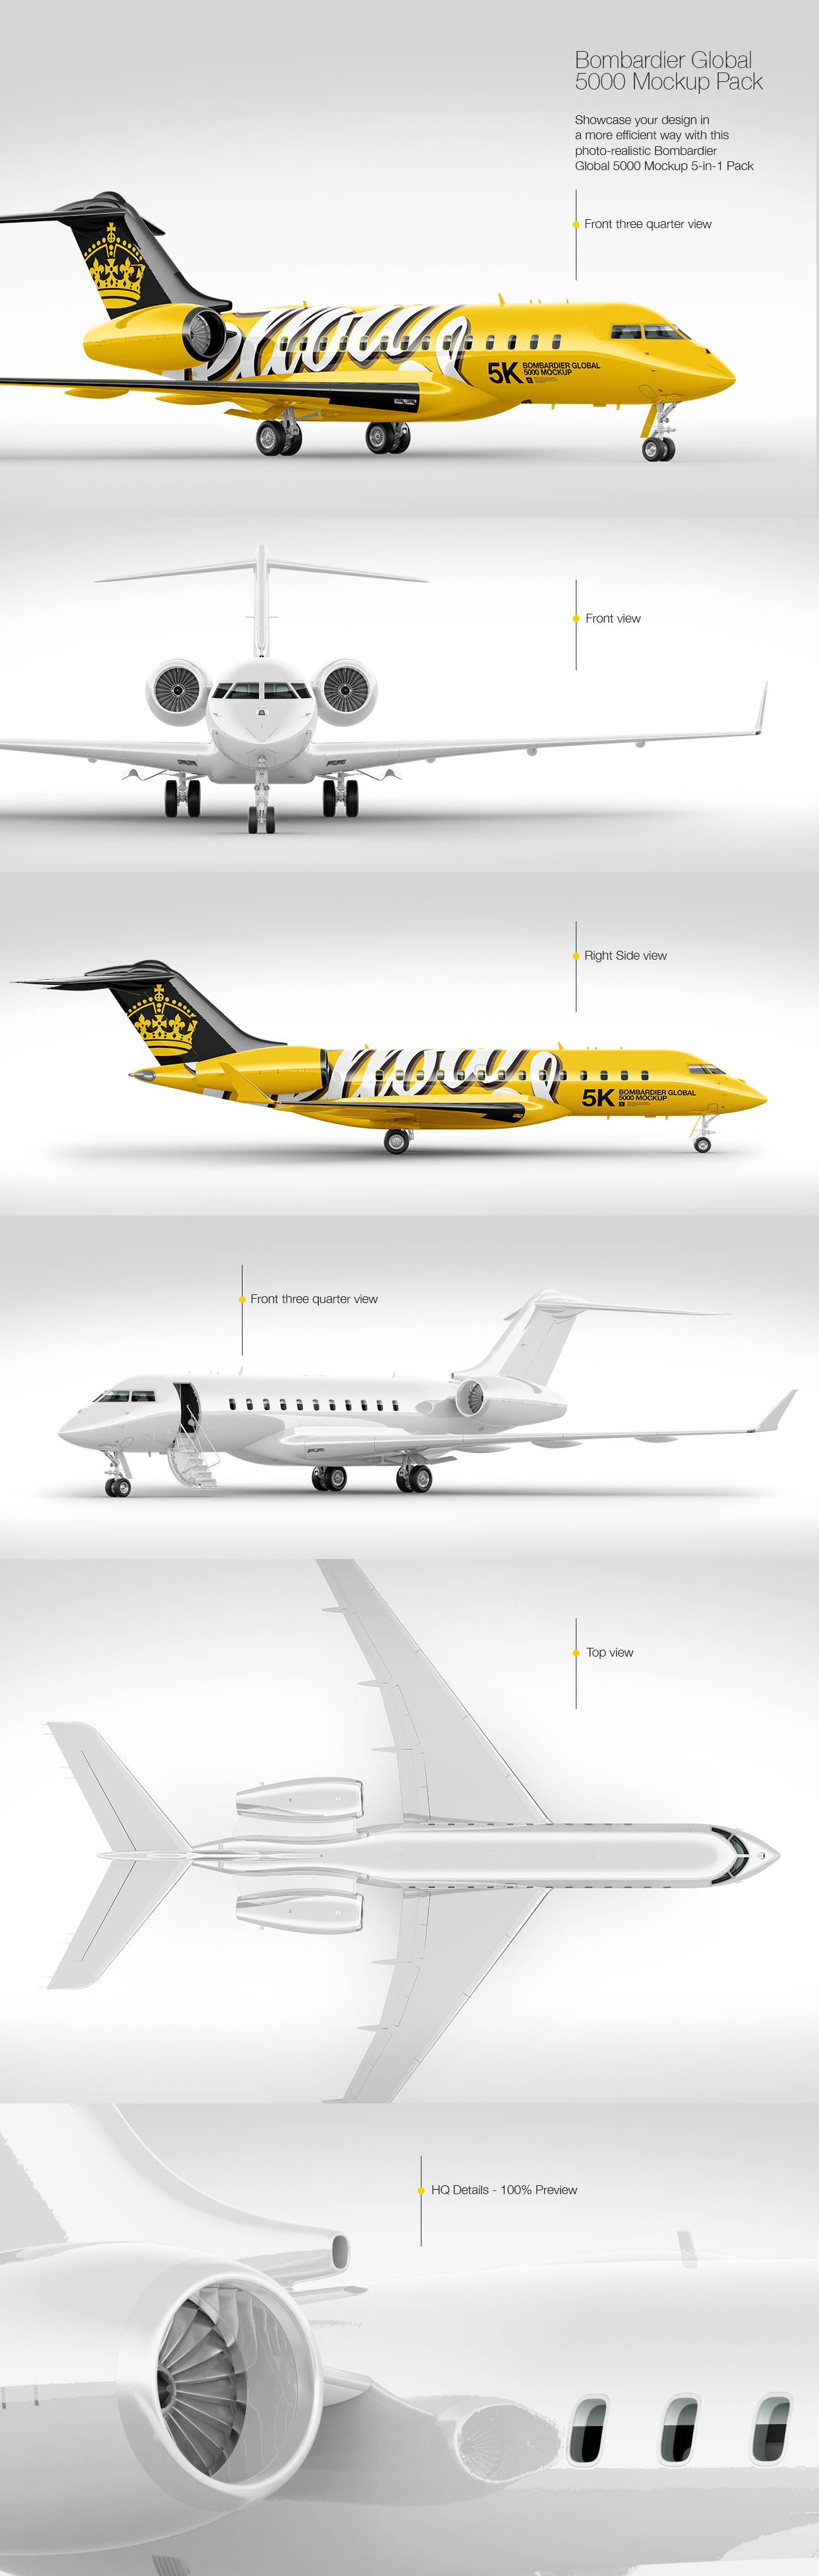 Bombardier Global 5000 Mockup Pack